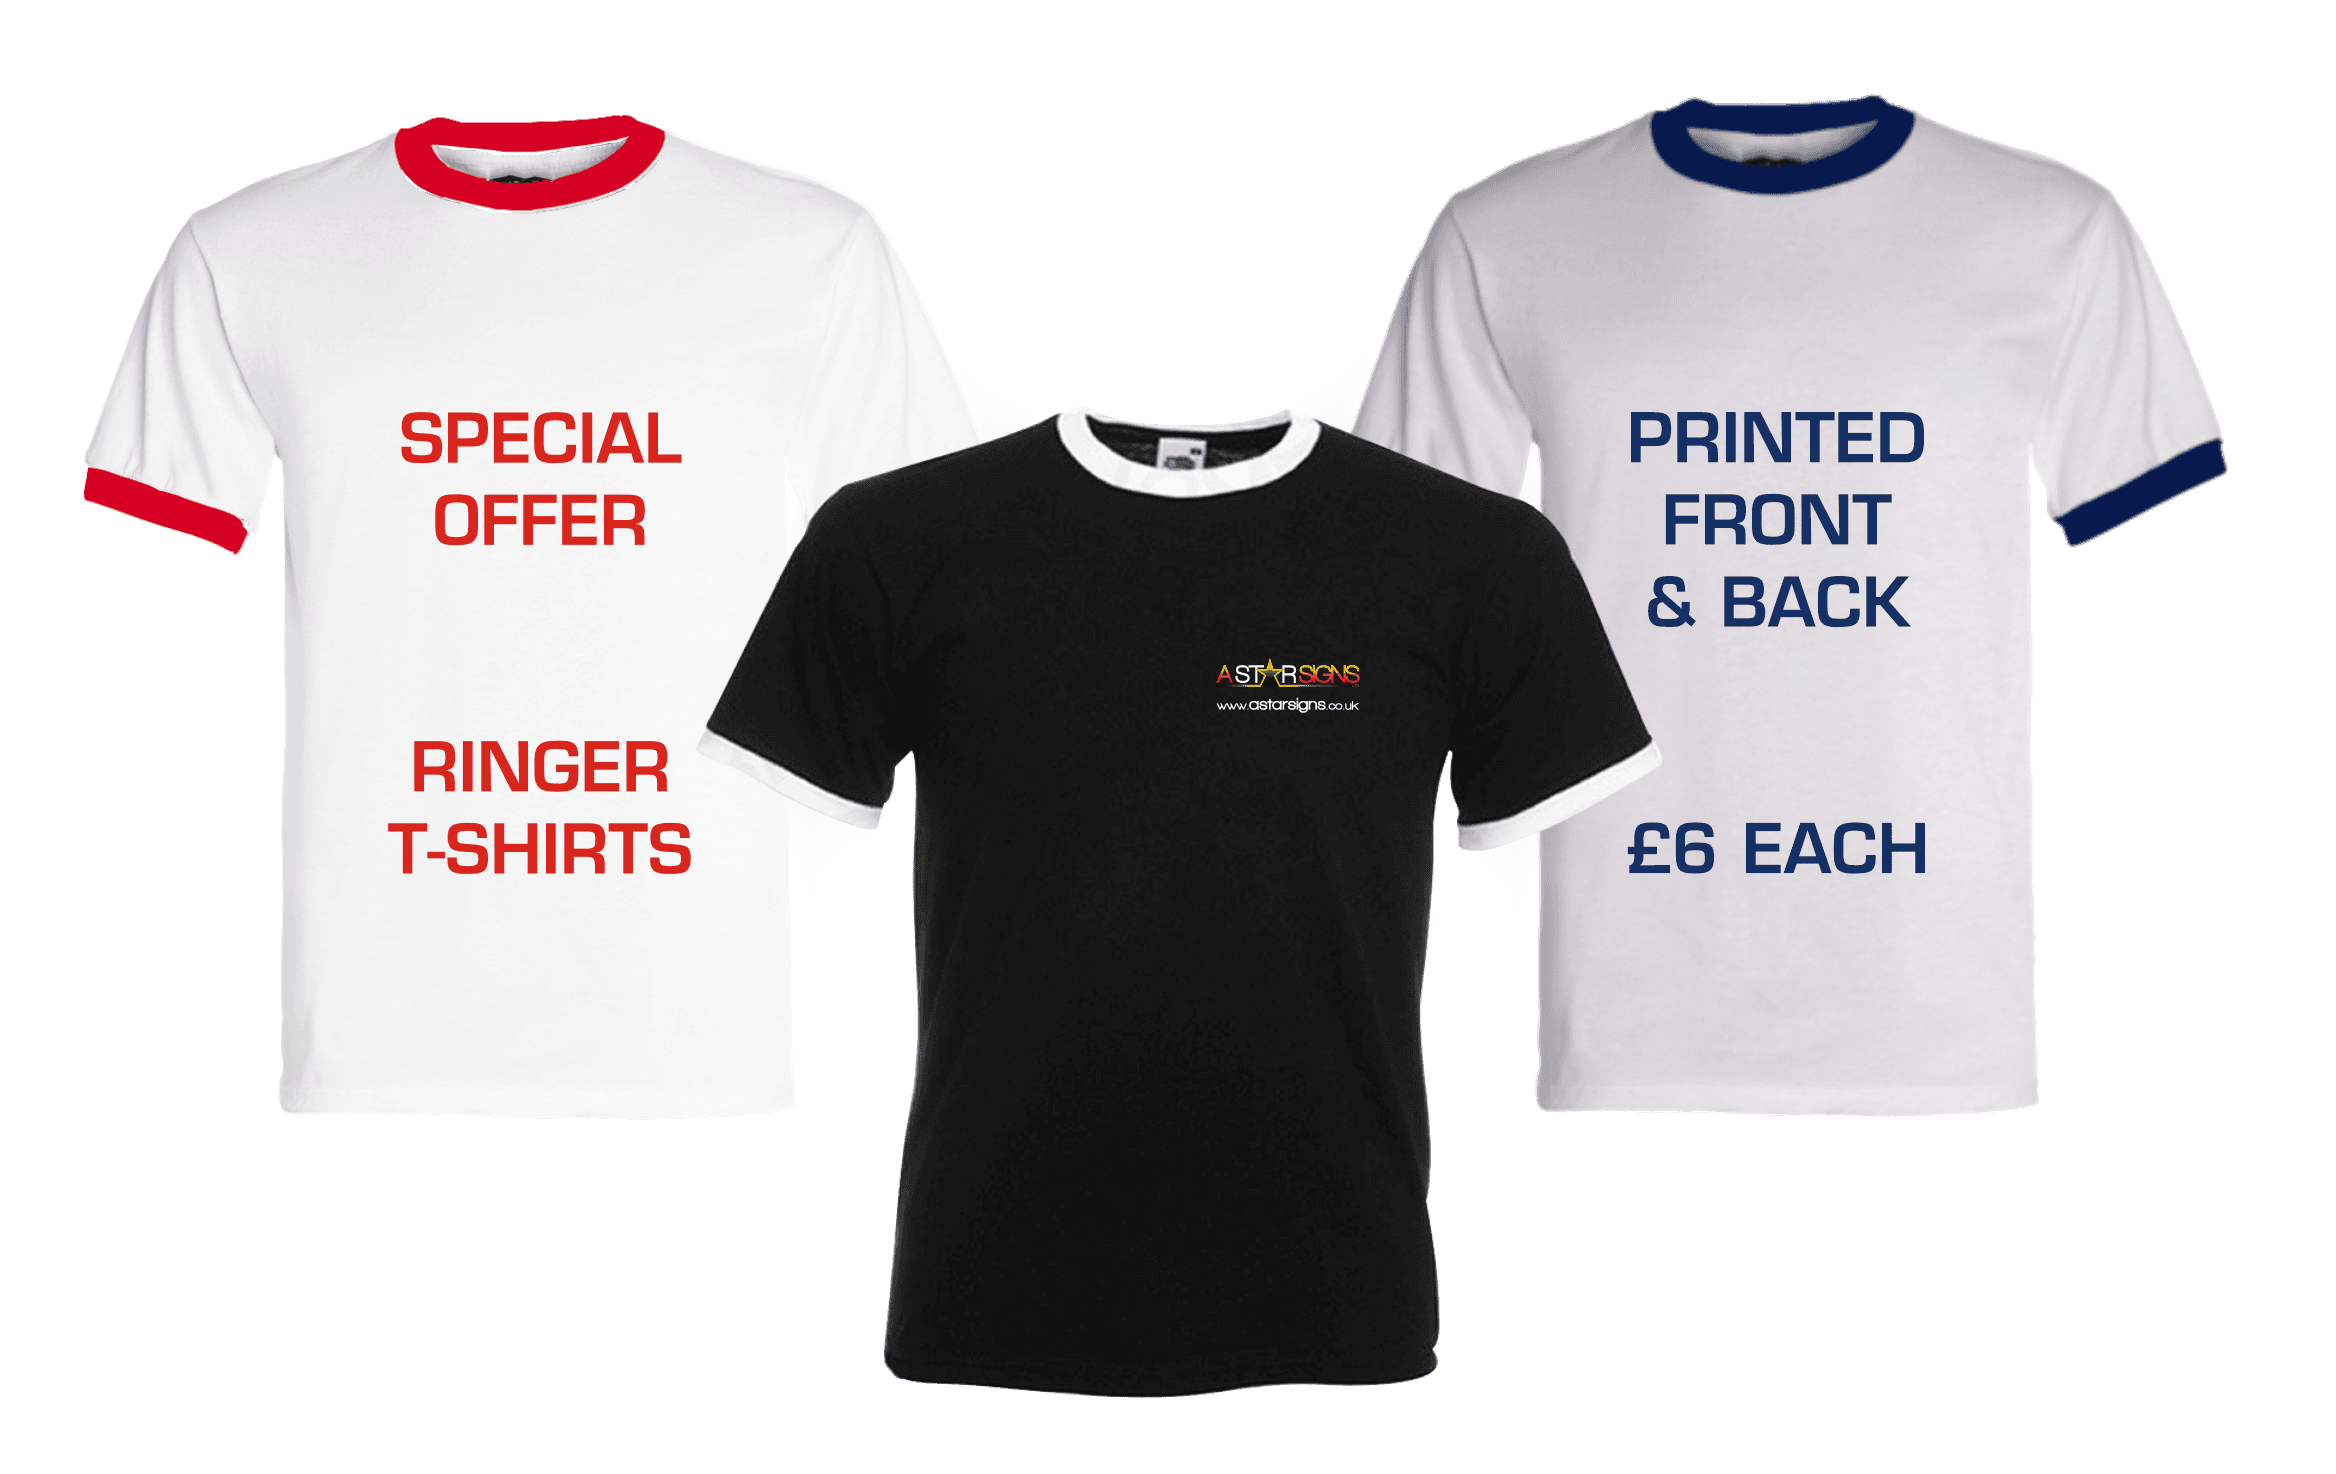 Special offer Ringer T-shirts